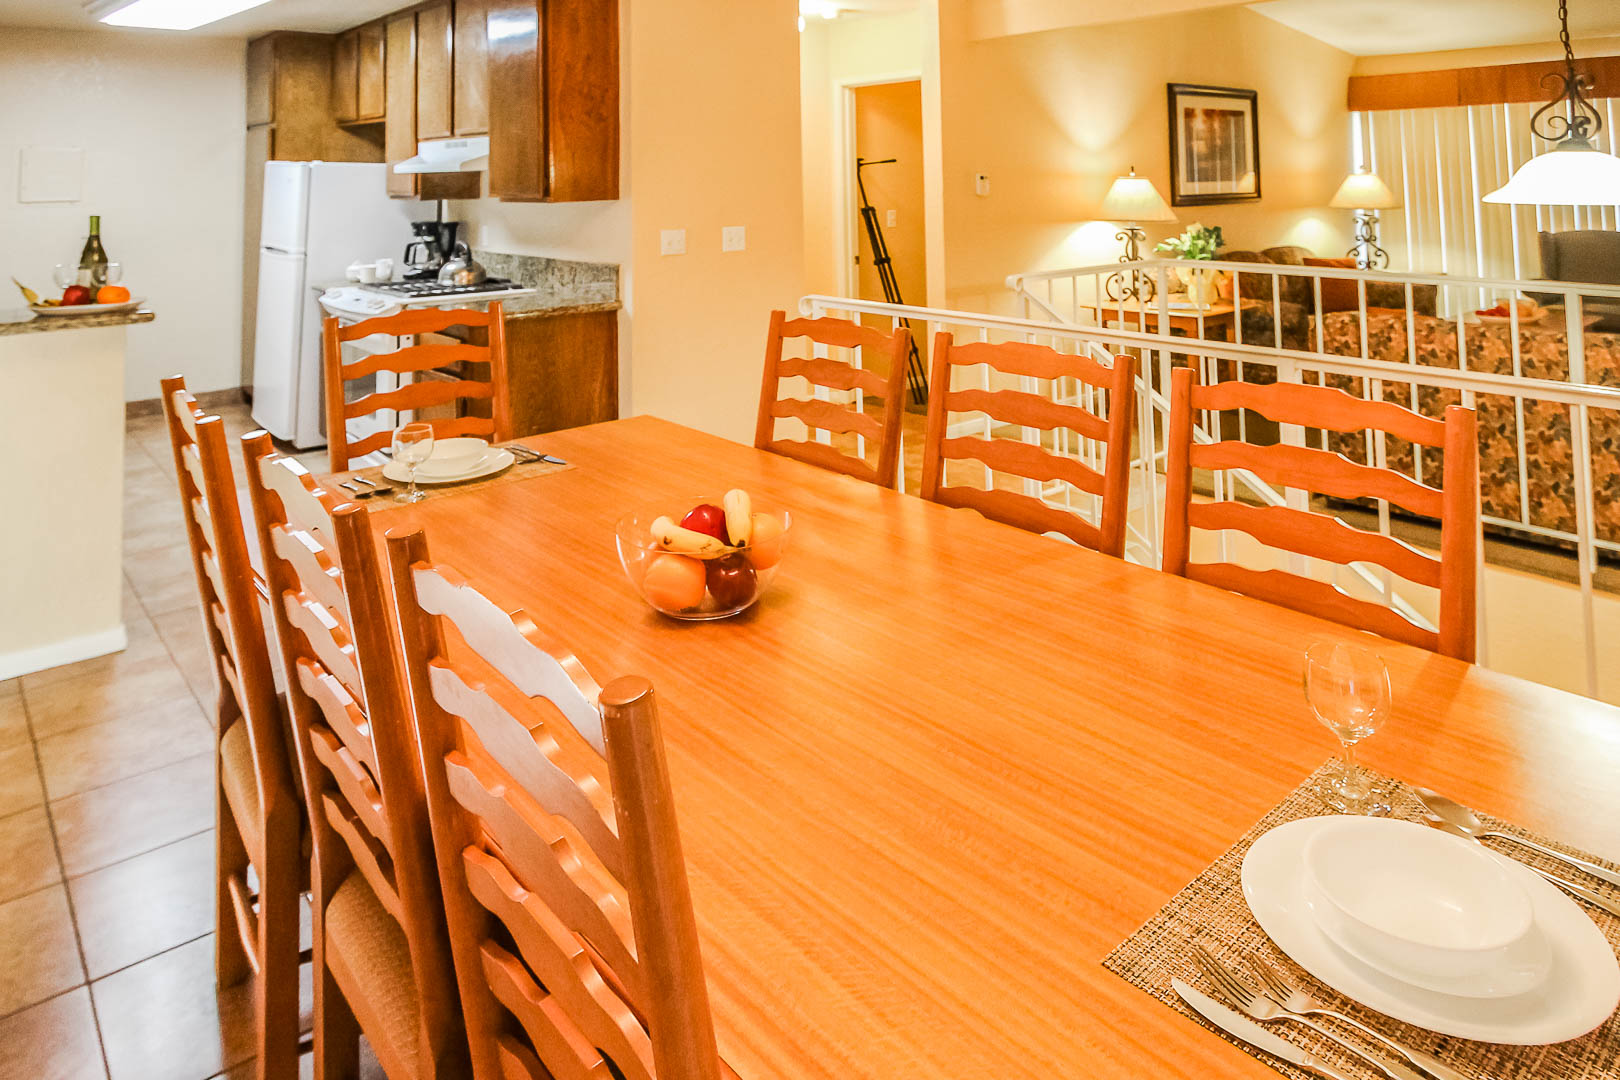 A charming dining room area at VRI's Lake Arrowhead Chalets in California.